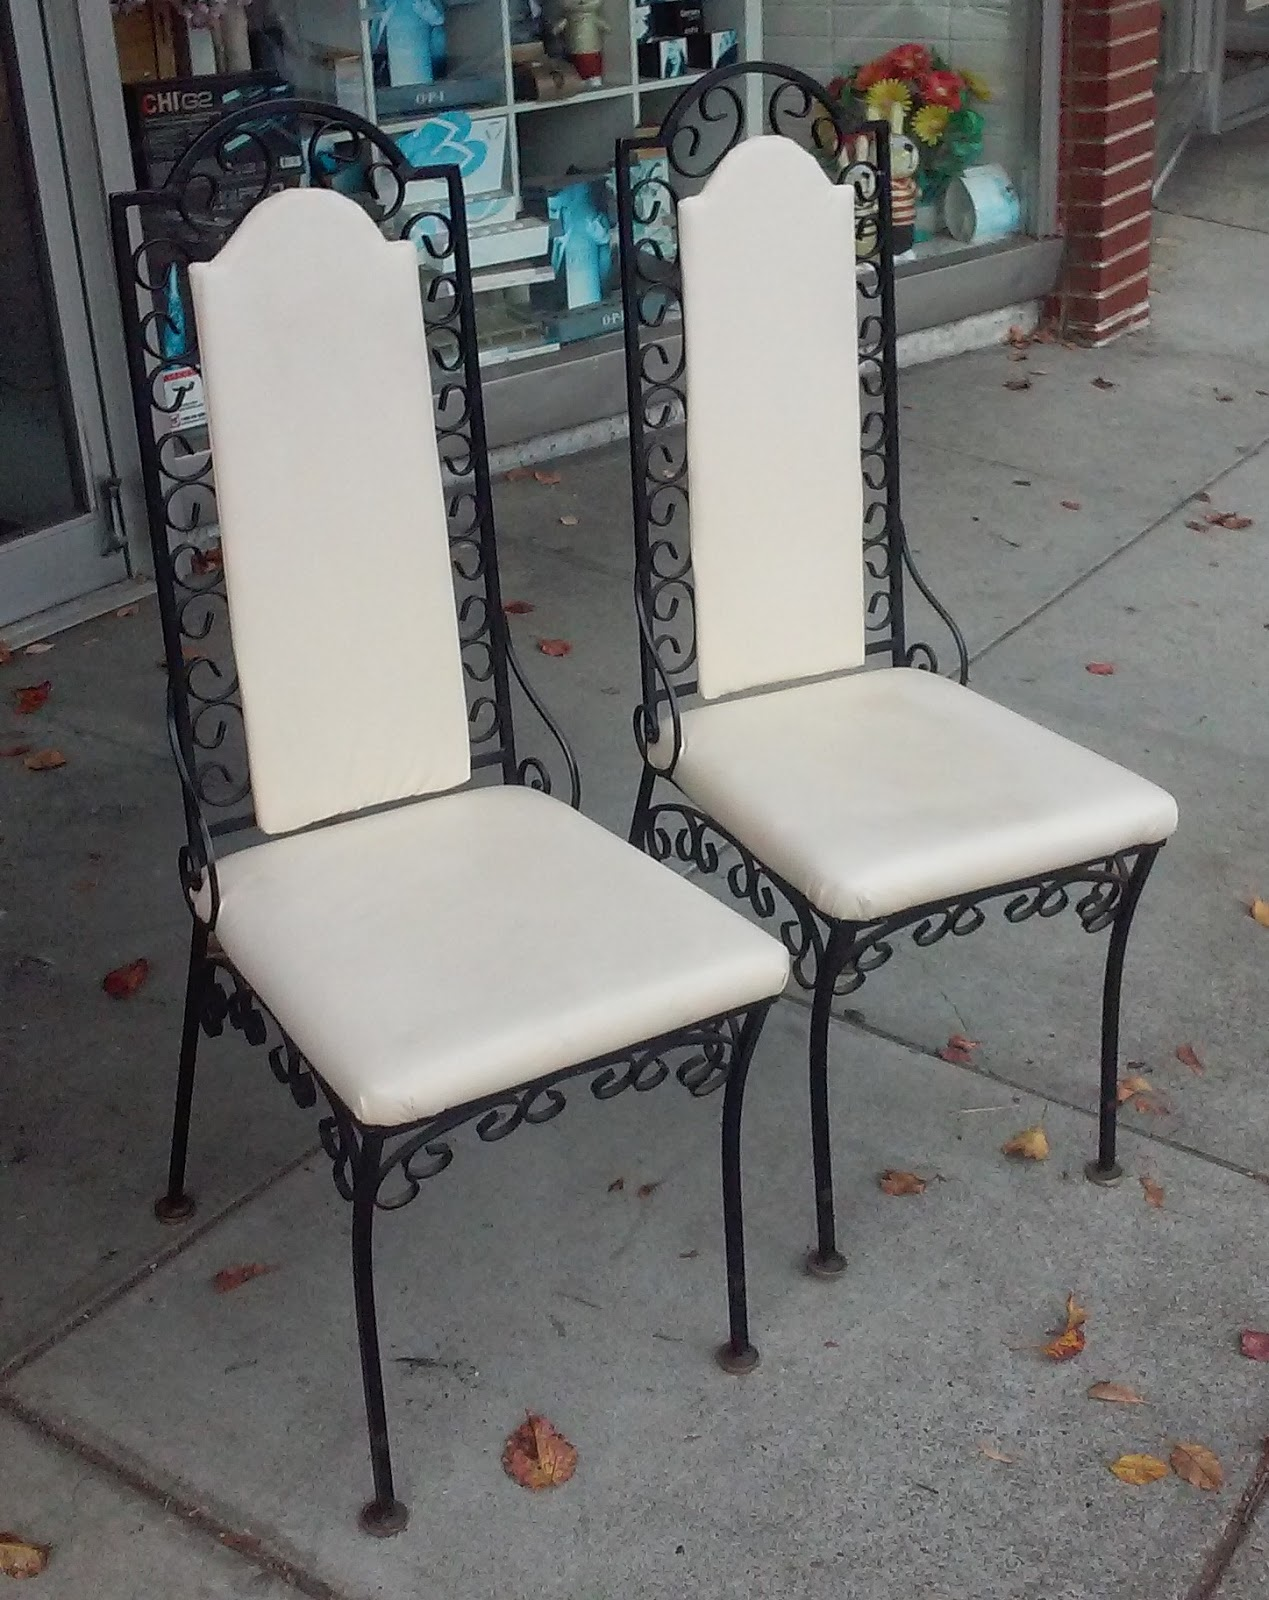 SOLD **BARGAIN BUY** #10128 Vintage Mediterranean Wrought Iron Side Chairs    $15 / Pair